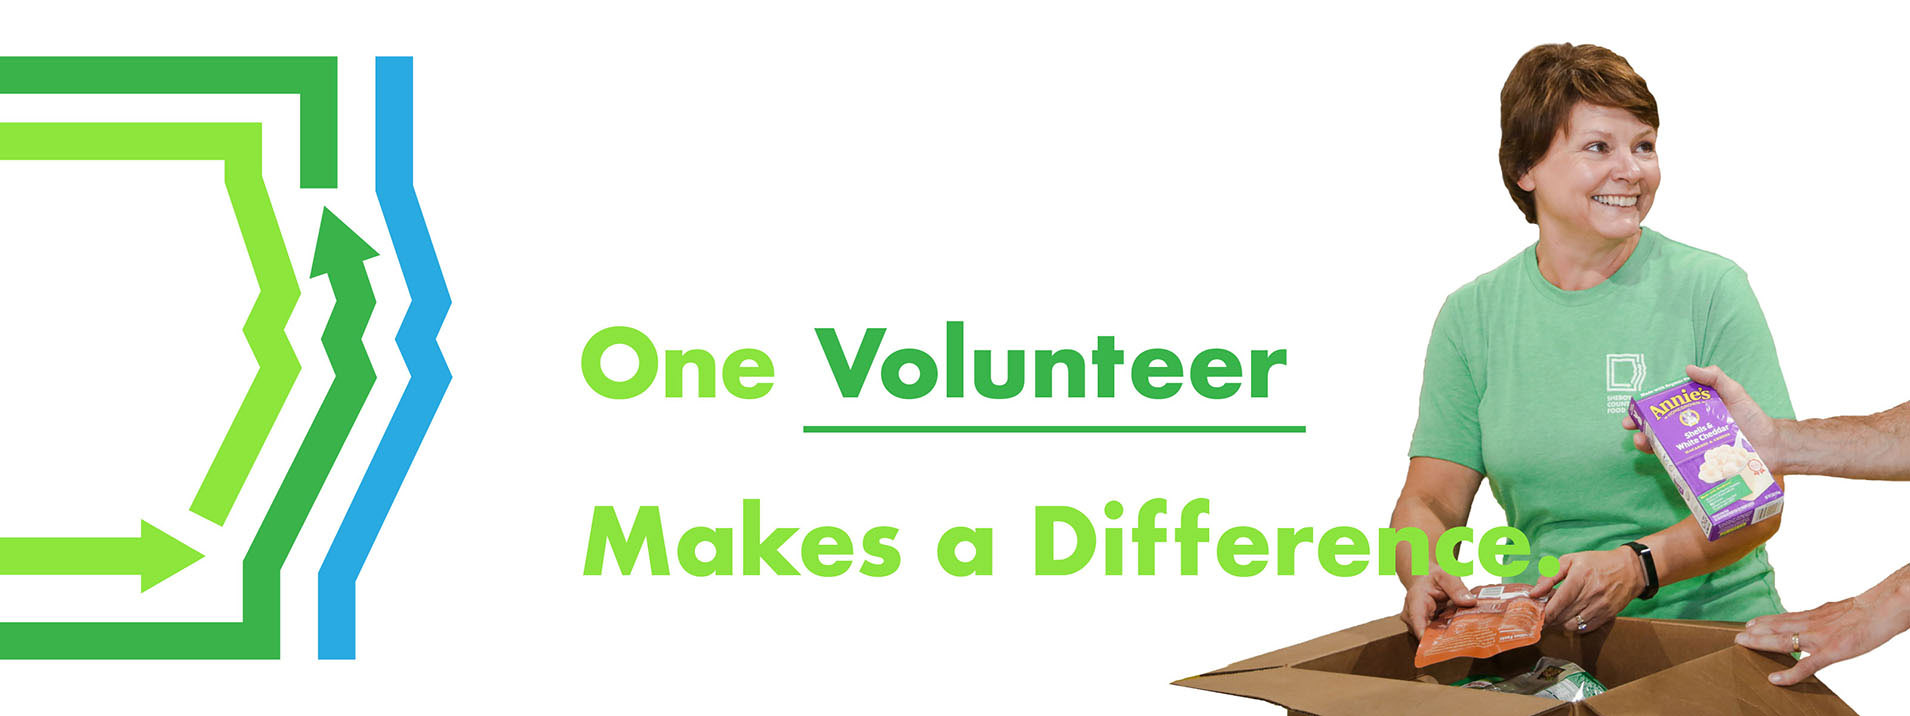 One Volunteer Makes Difference12